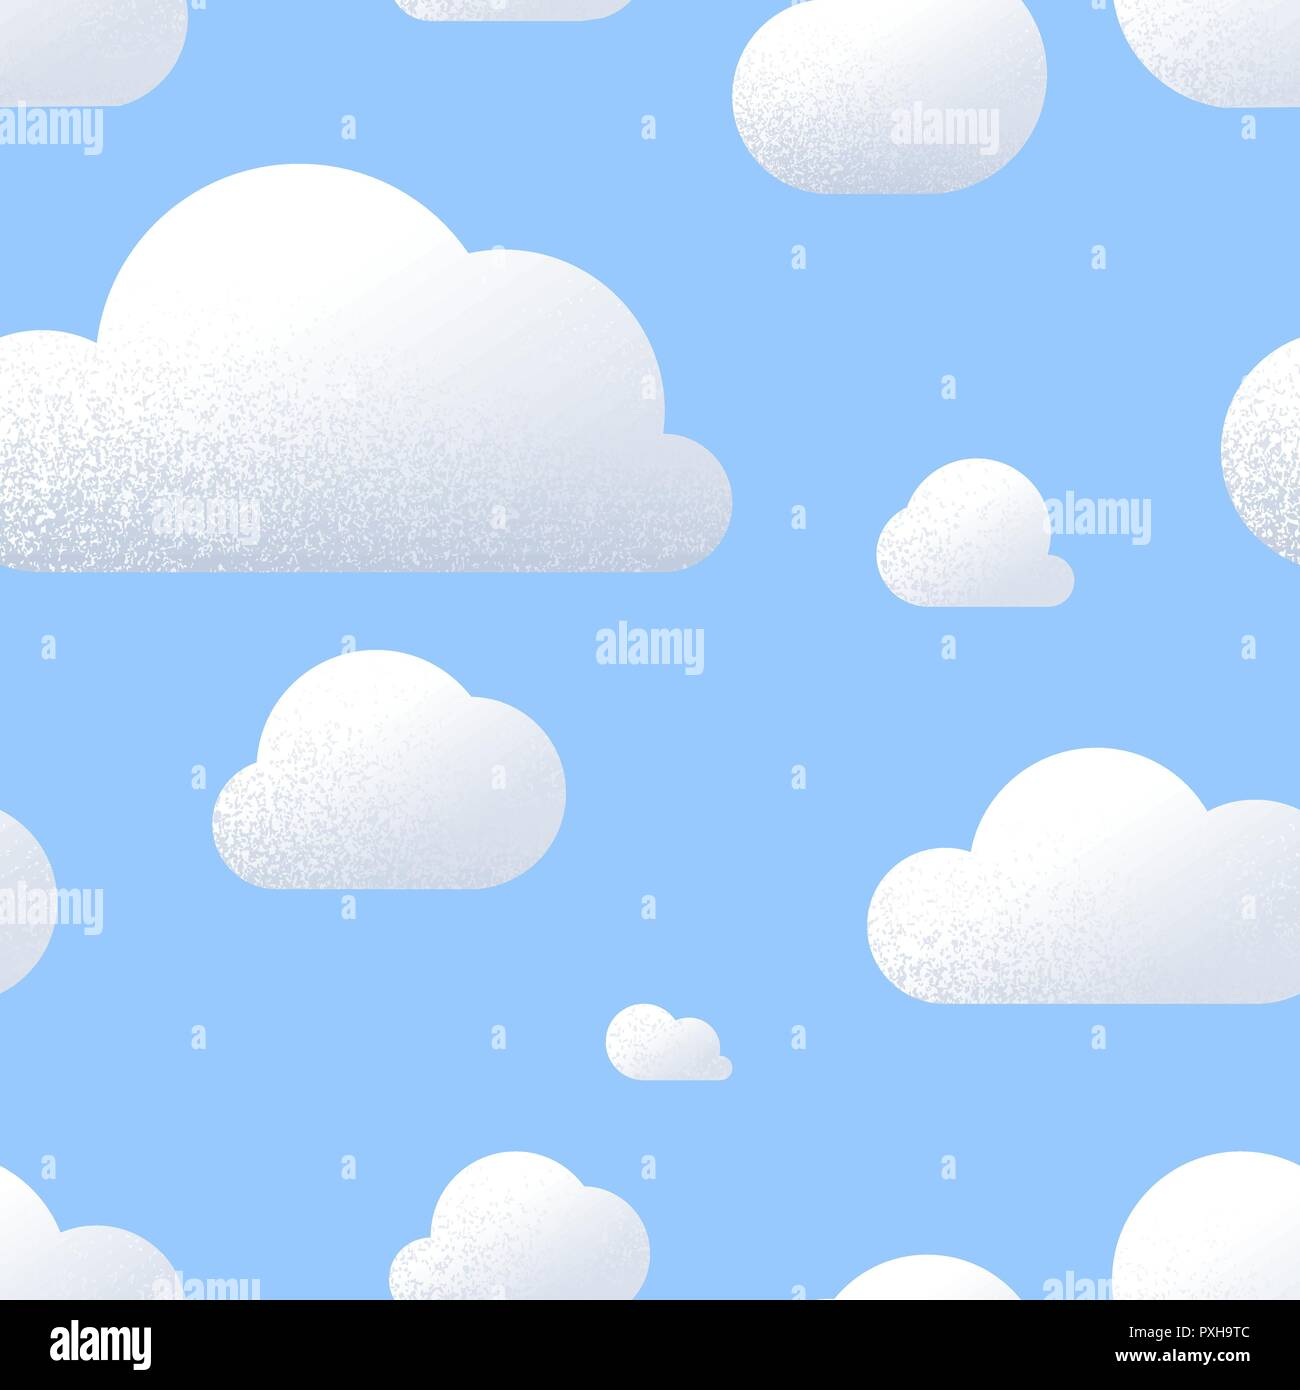 a lot of cute clouds with texture in blue sky cartoon seamless